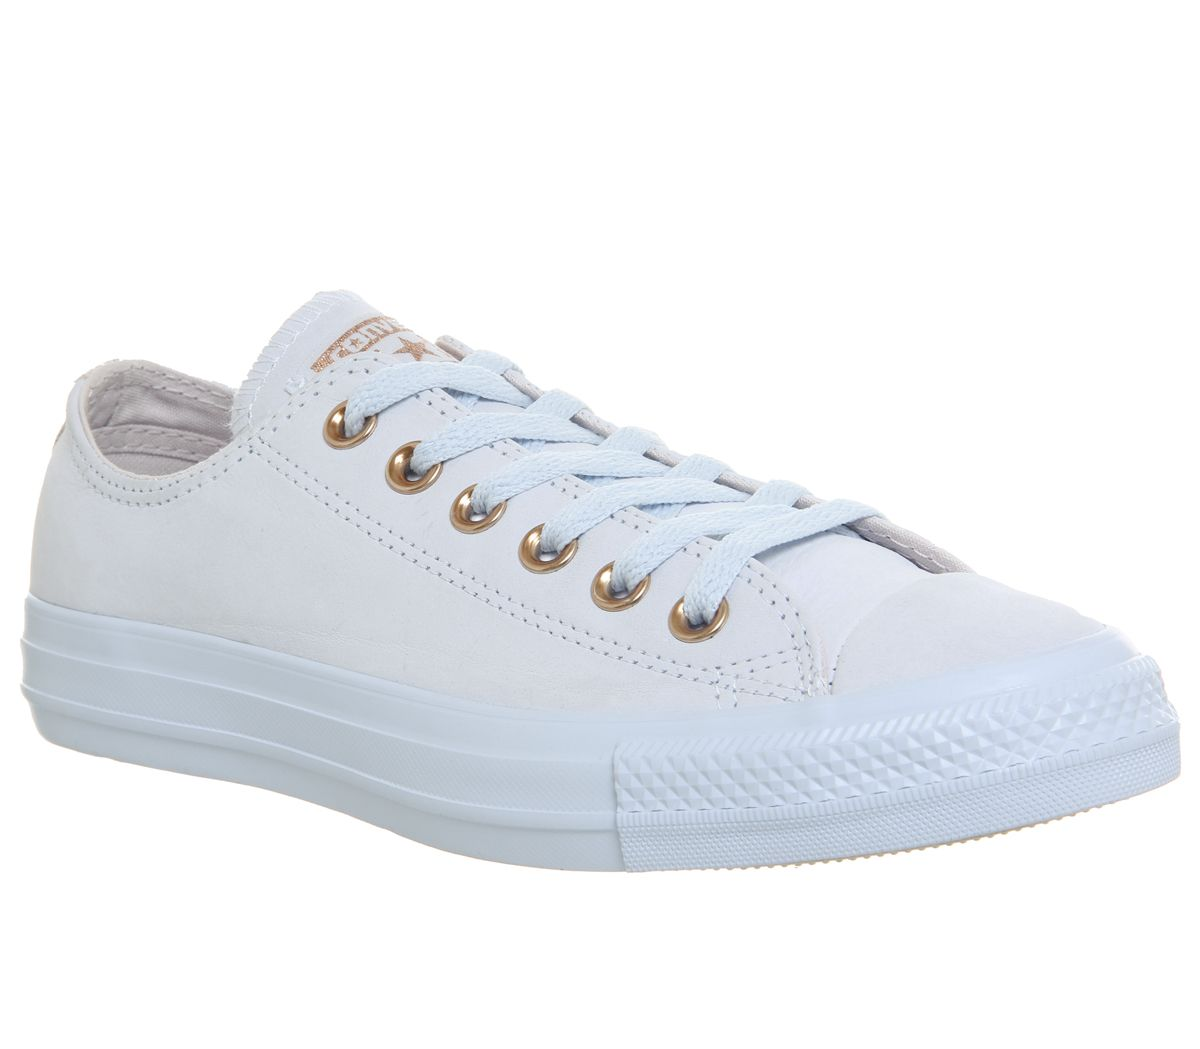 f3484d4ace6f Converse All Star Low Leather Trainers Blue Tint Pale Quartz - Hers ...